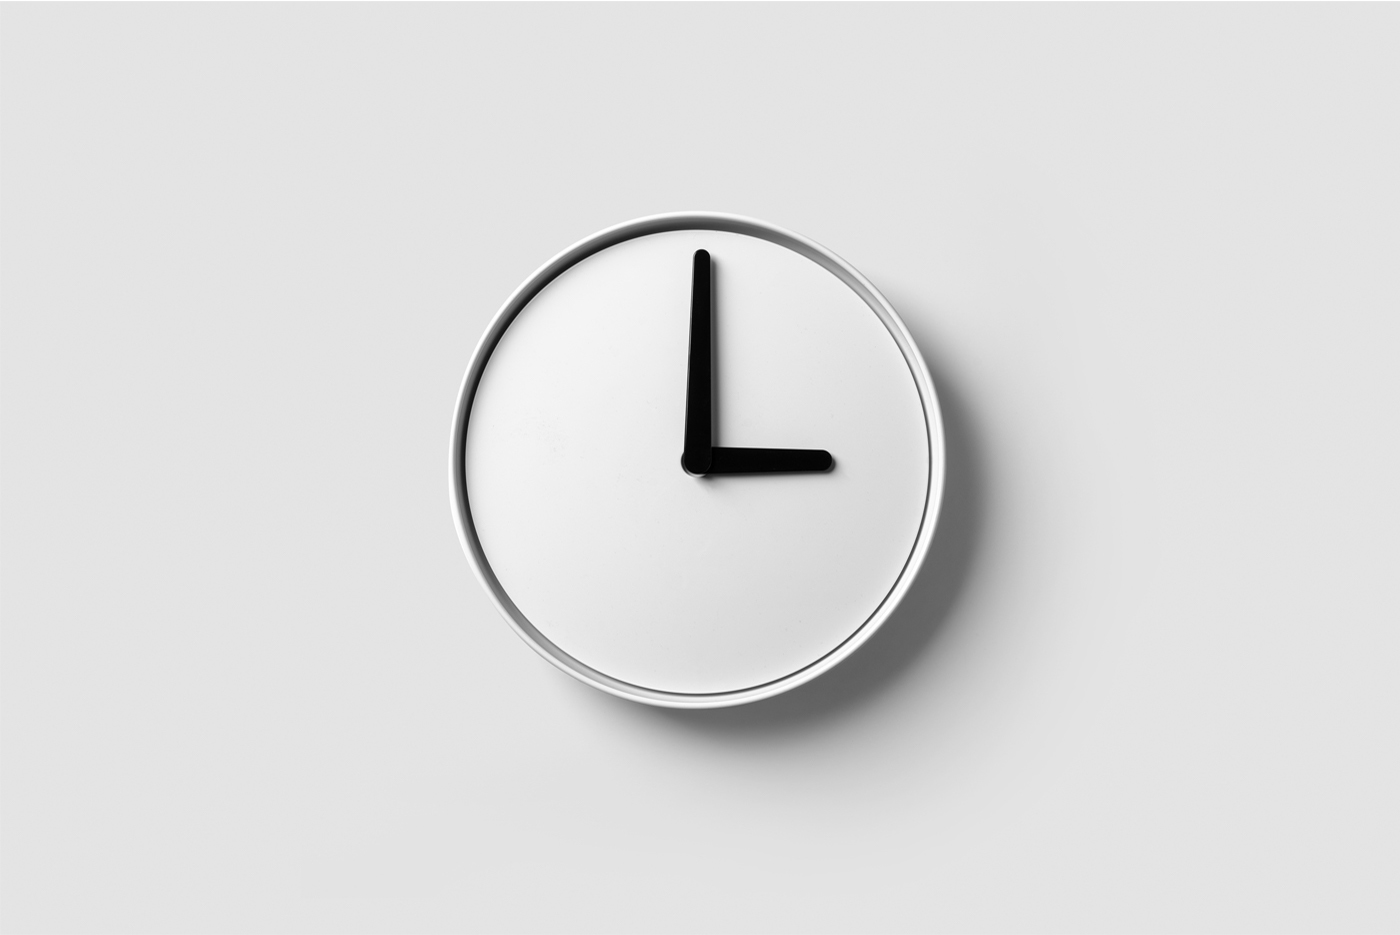 Circle Wall Clock - Free PSD Mockup